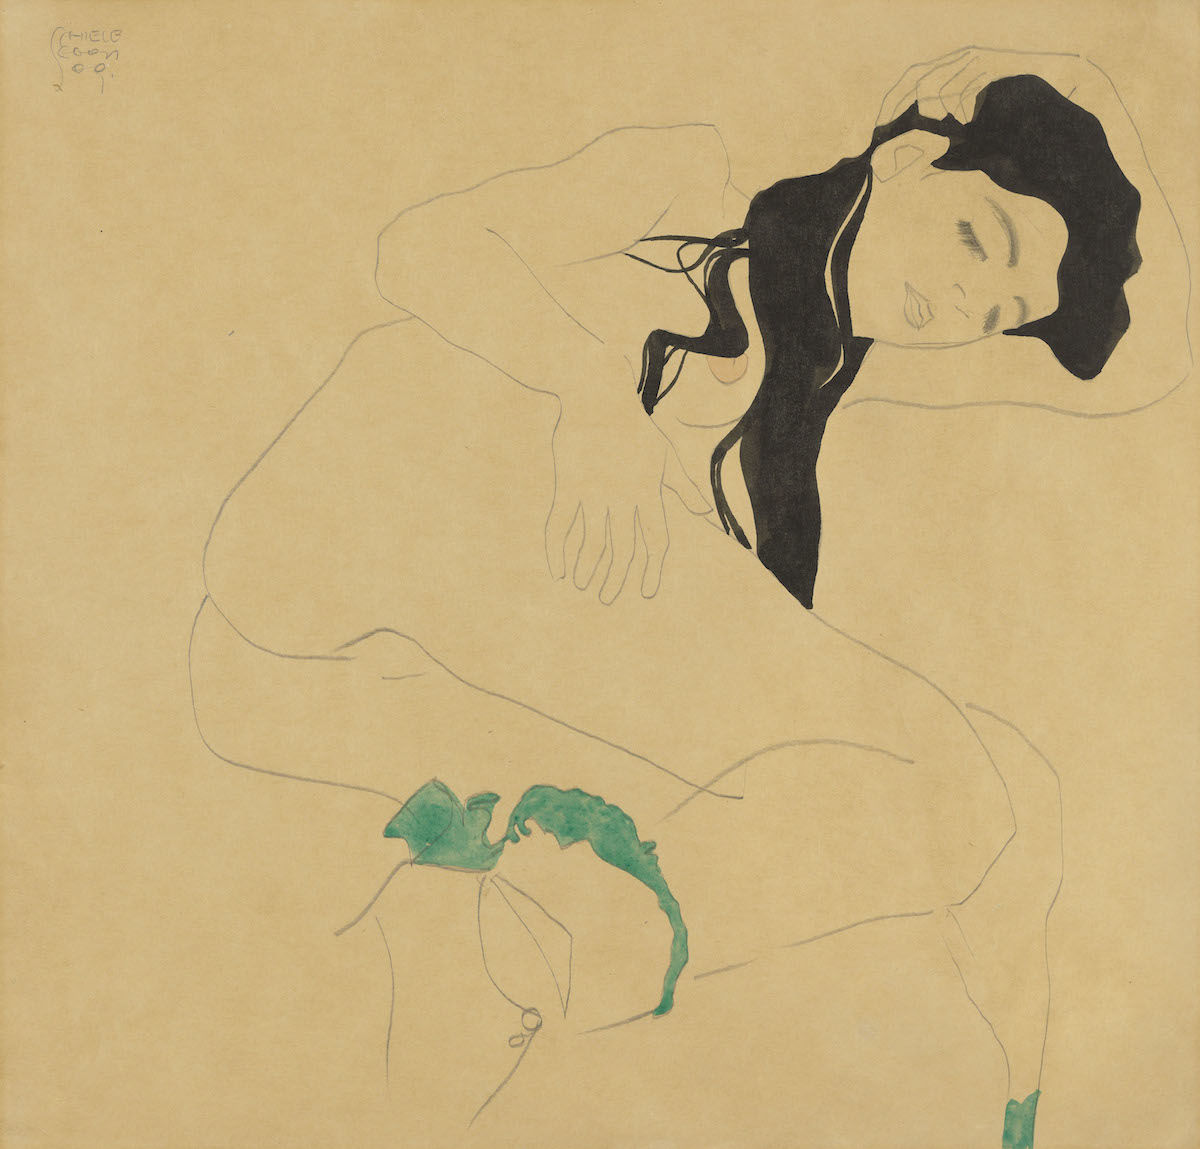 Egon Schiele, Liegender Mädchenakt, 1909. Est. £200,000–300,000, sold for £1,271,250. Courtesy Christie's Images Ltd. 2019.